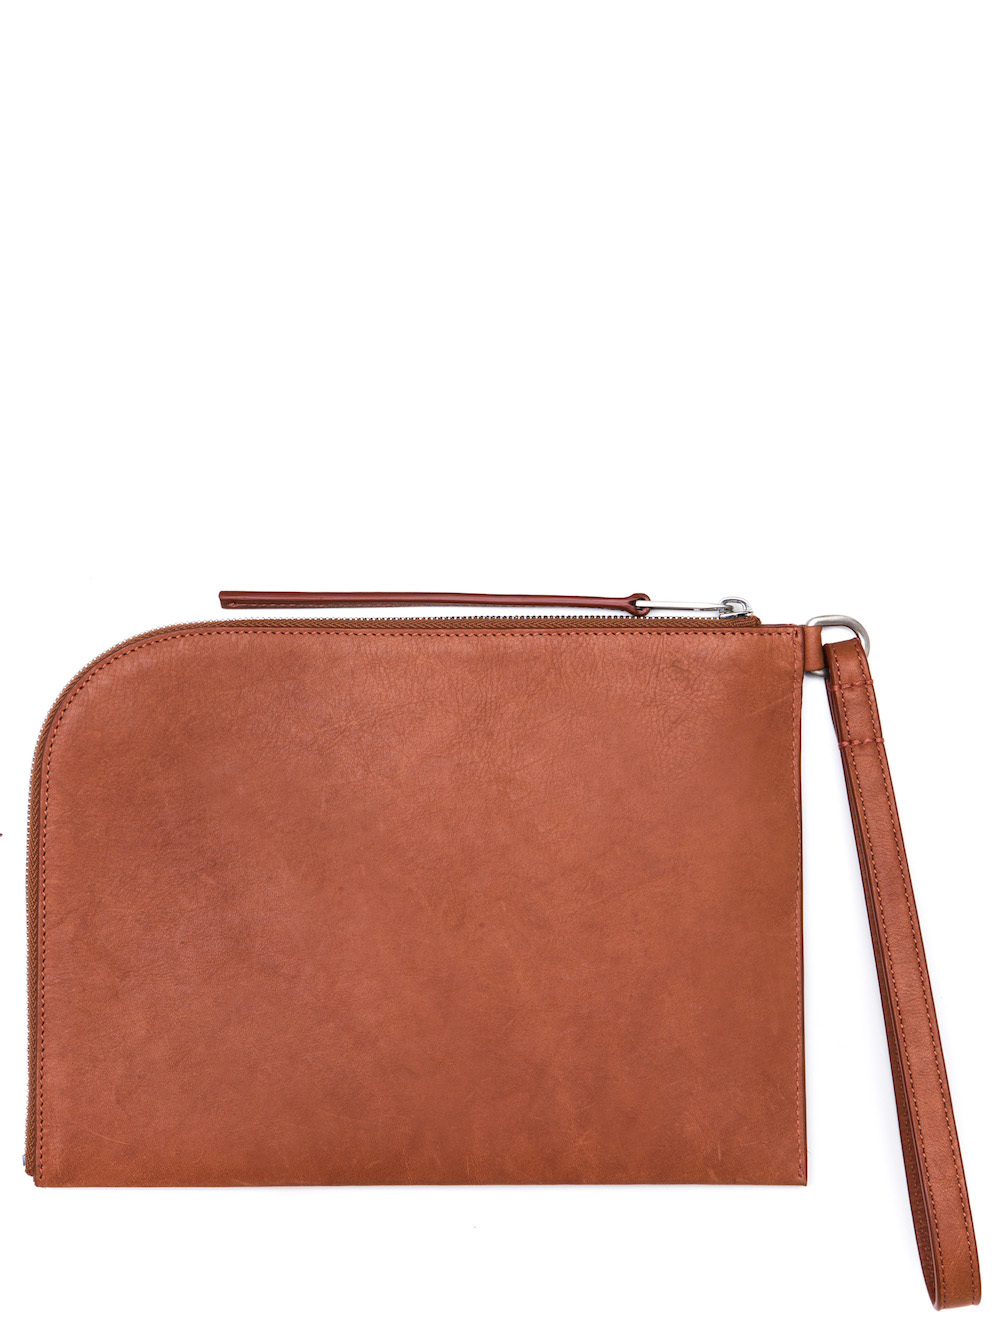 RICK OWENS MEDIUM ZIPPED POUCH IN CINNAMON